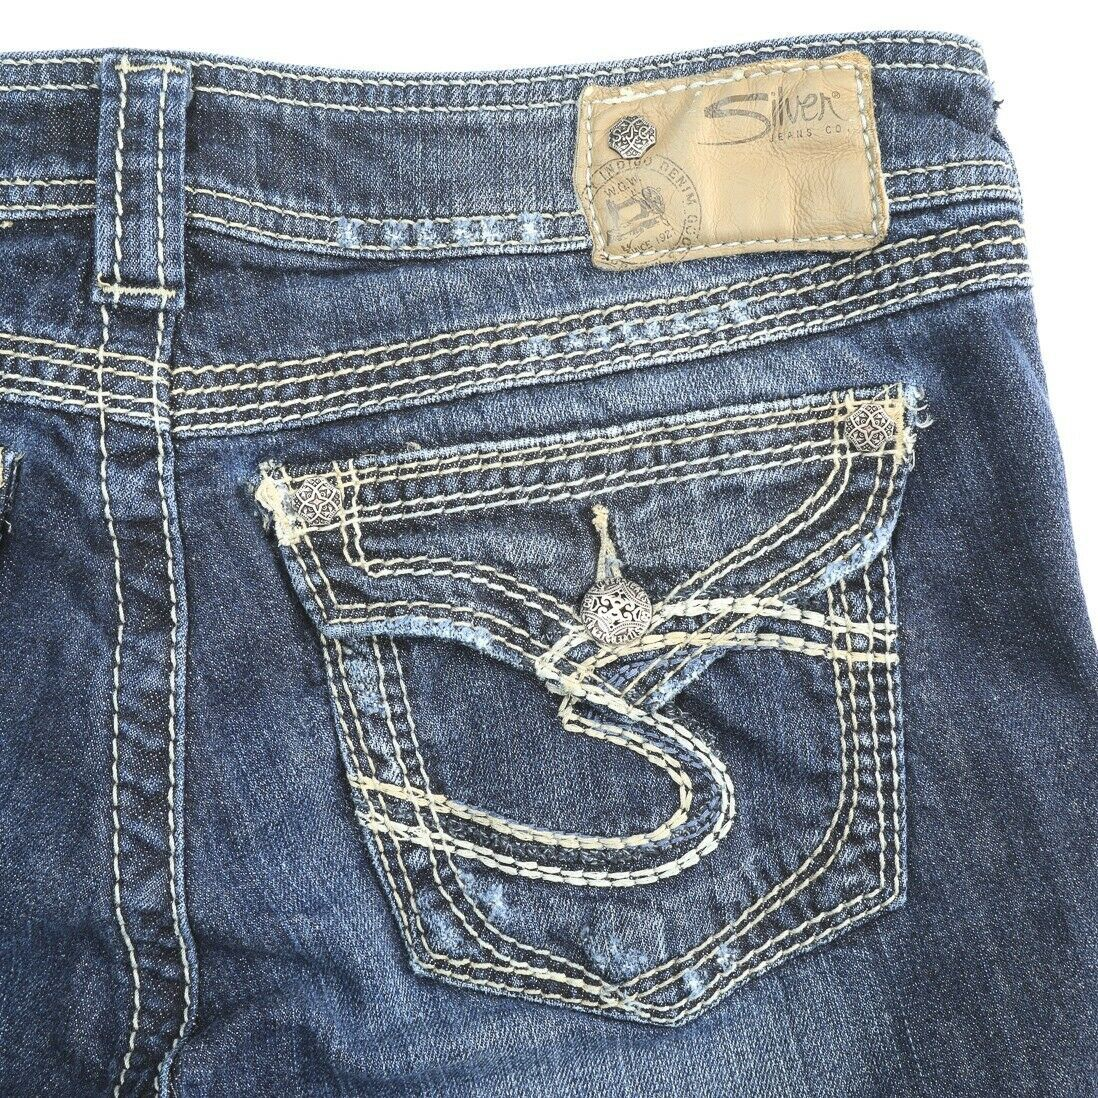 Primary image for Silver Suki Surplus Dark Wash Flap Pocket Stretch Boot Cut Jeans Womens 29 29x30